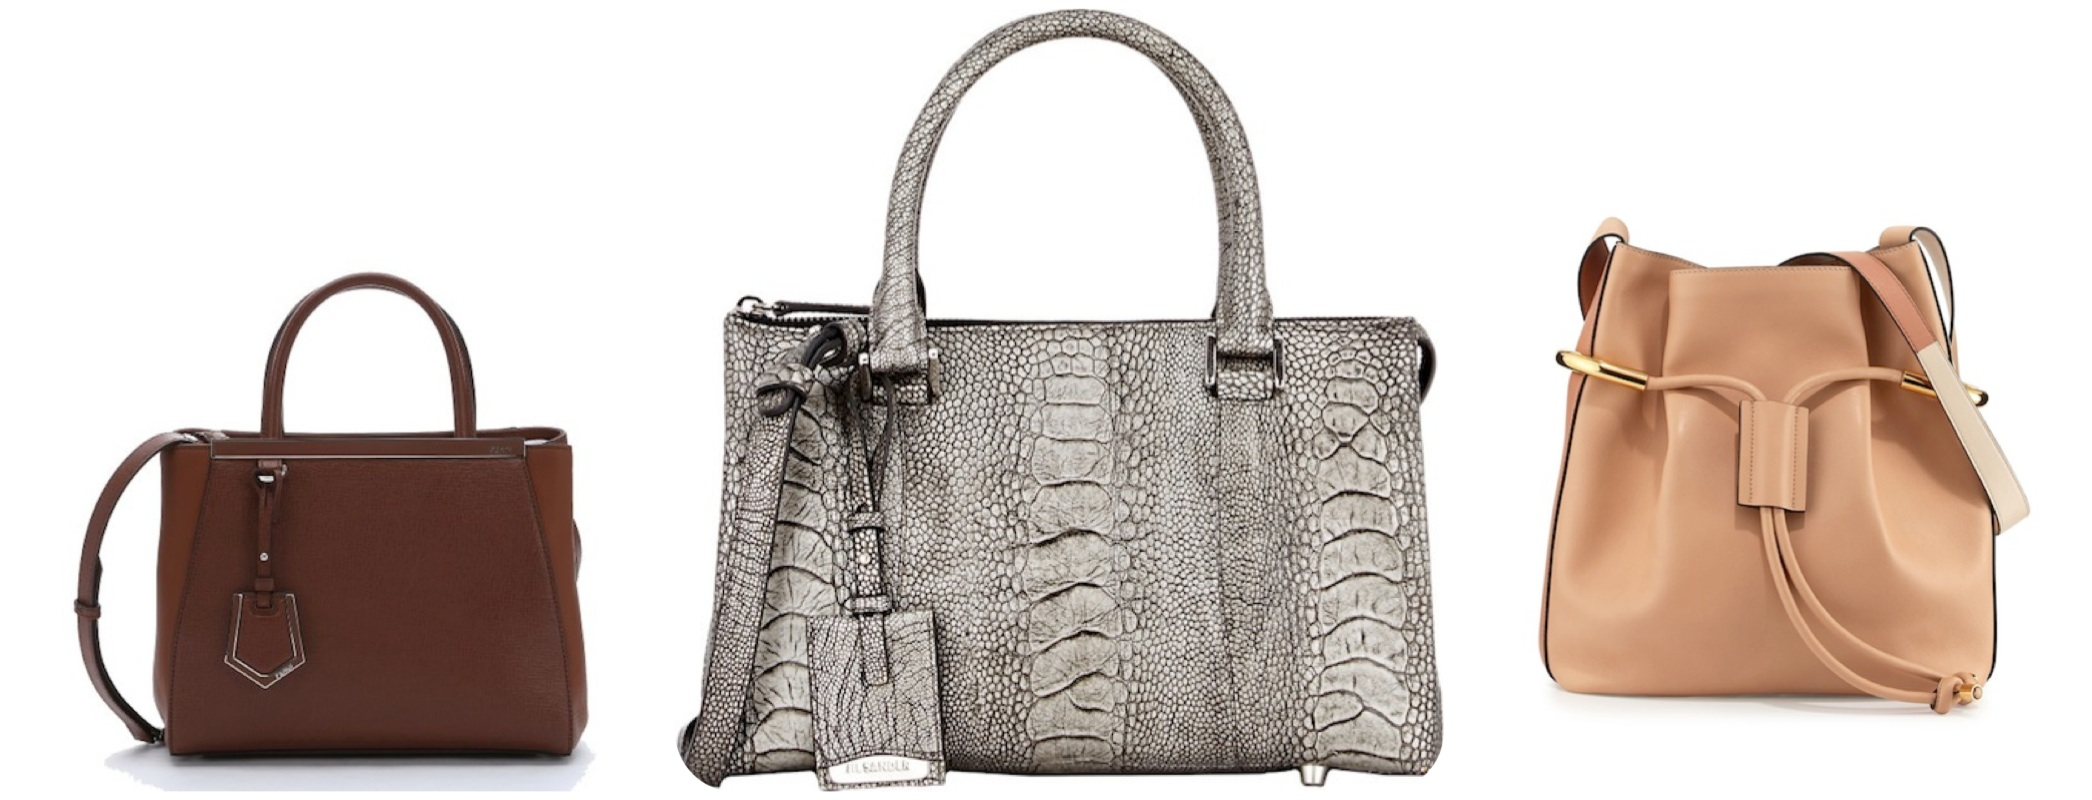 bags cate 3 3